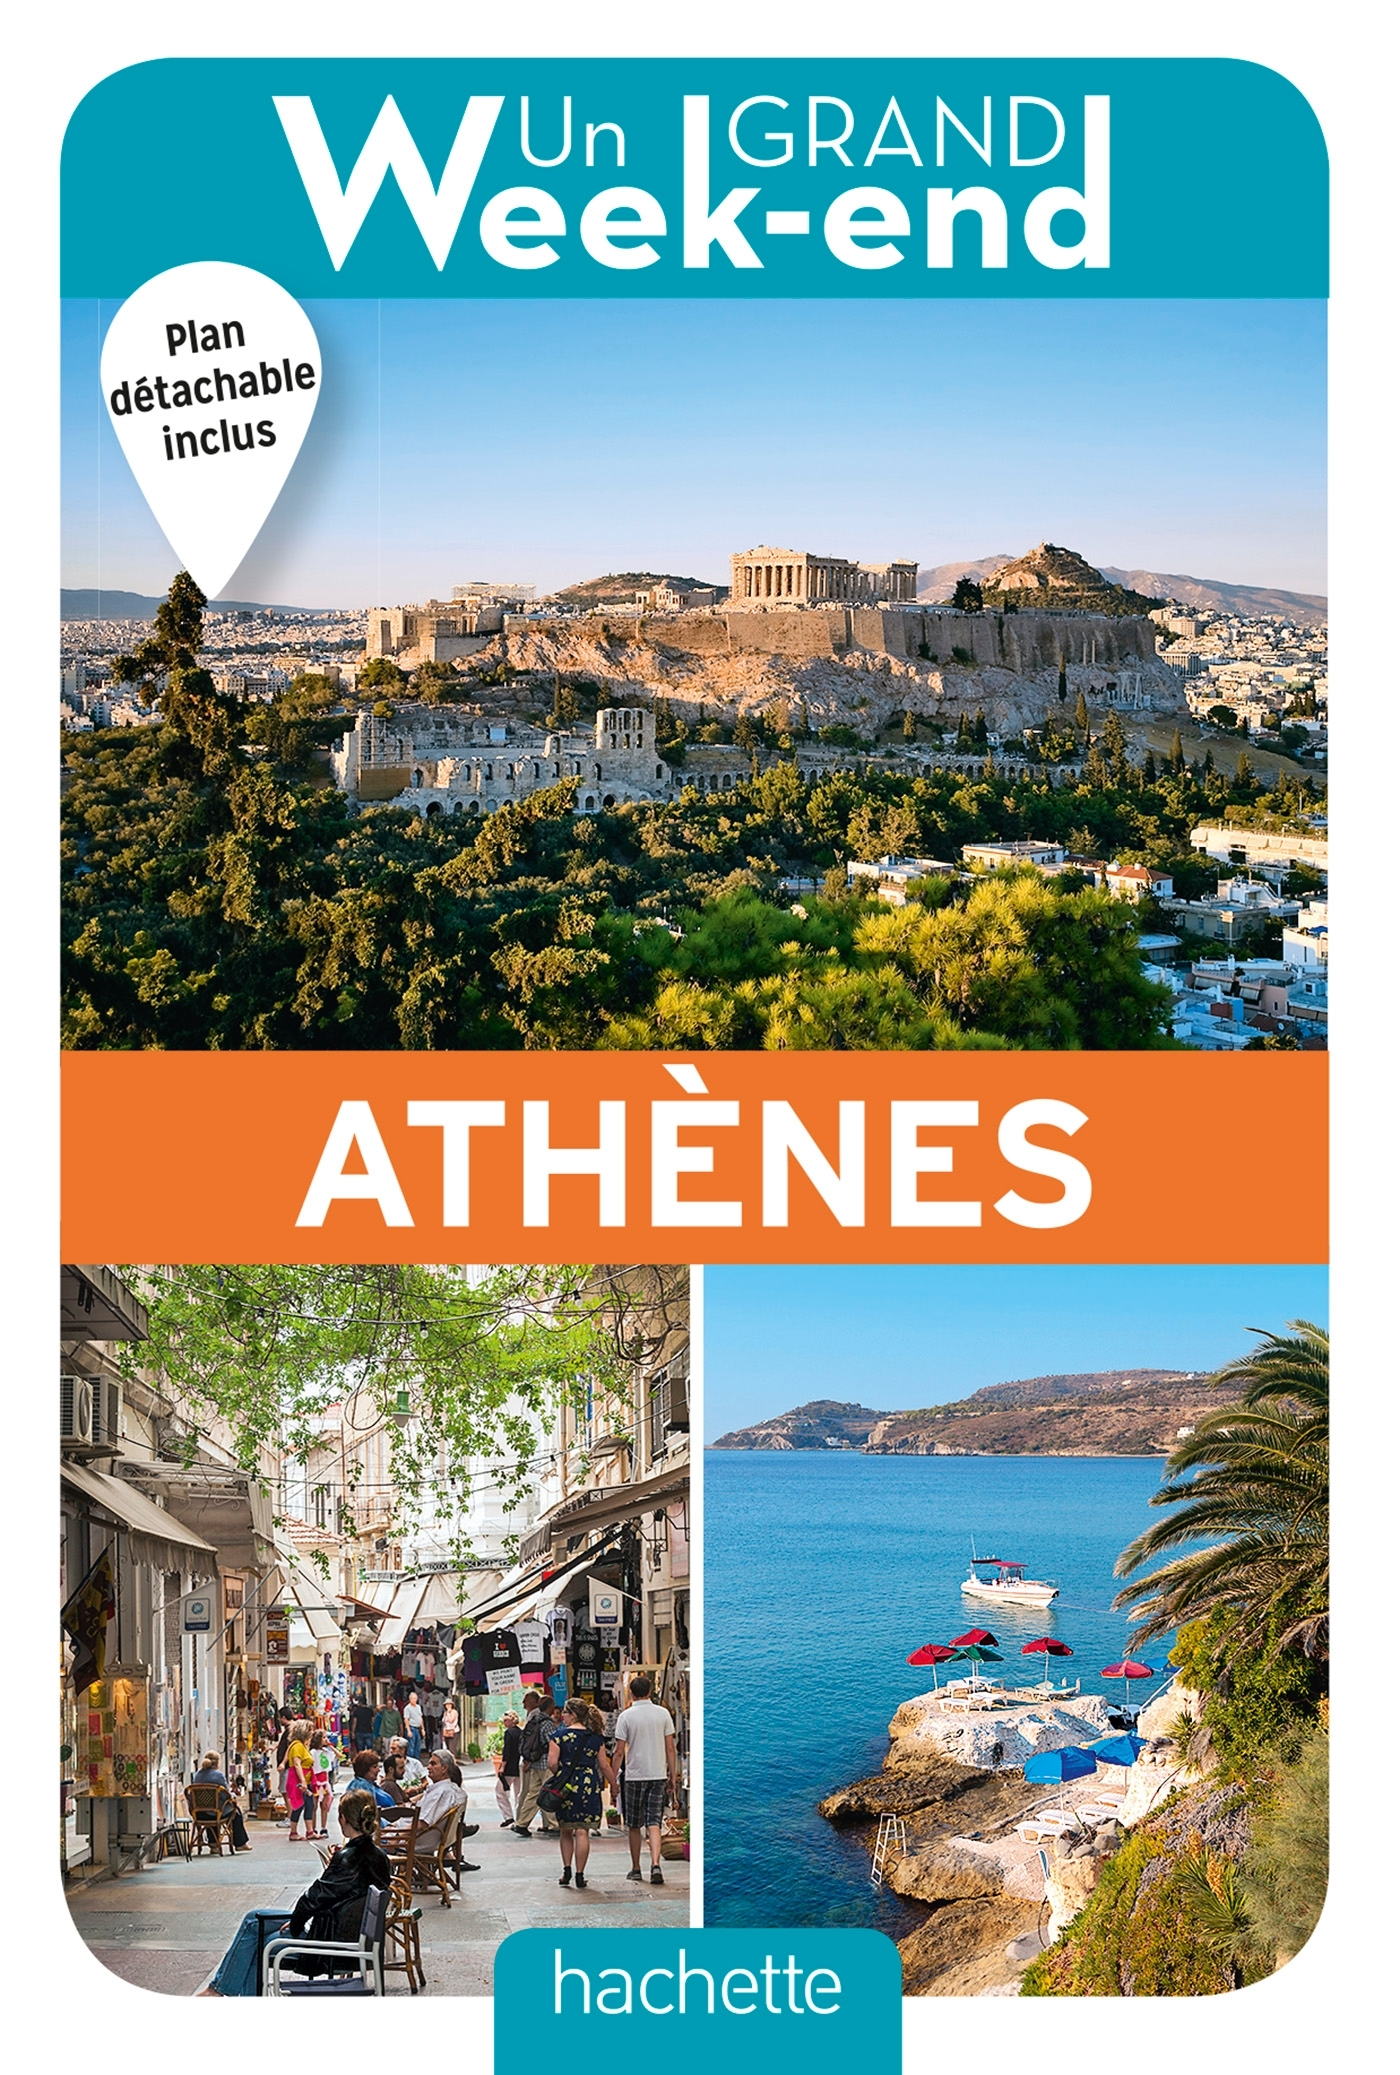 GUIDE UN GRAND WEEK-END A ATHENES